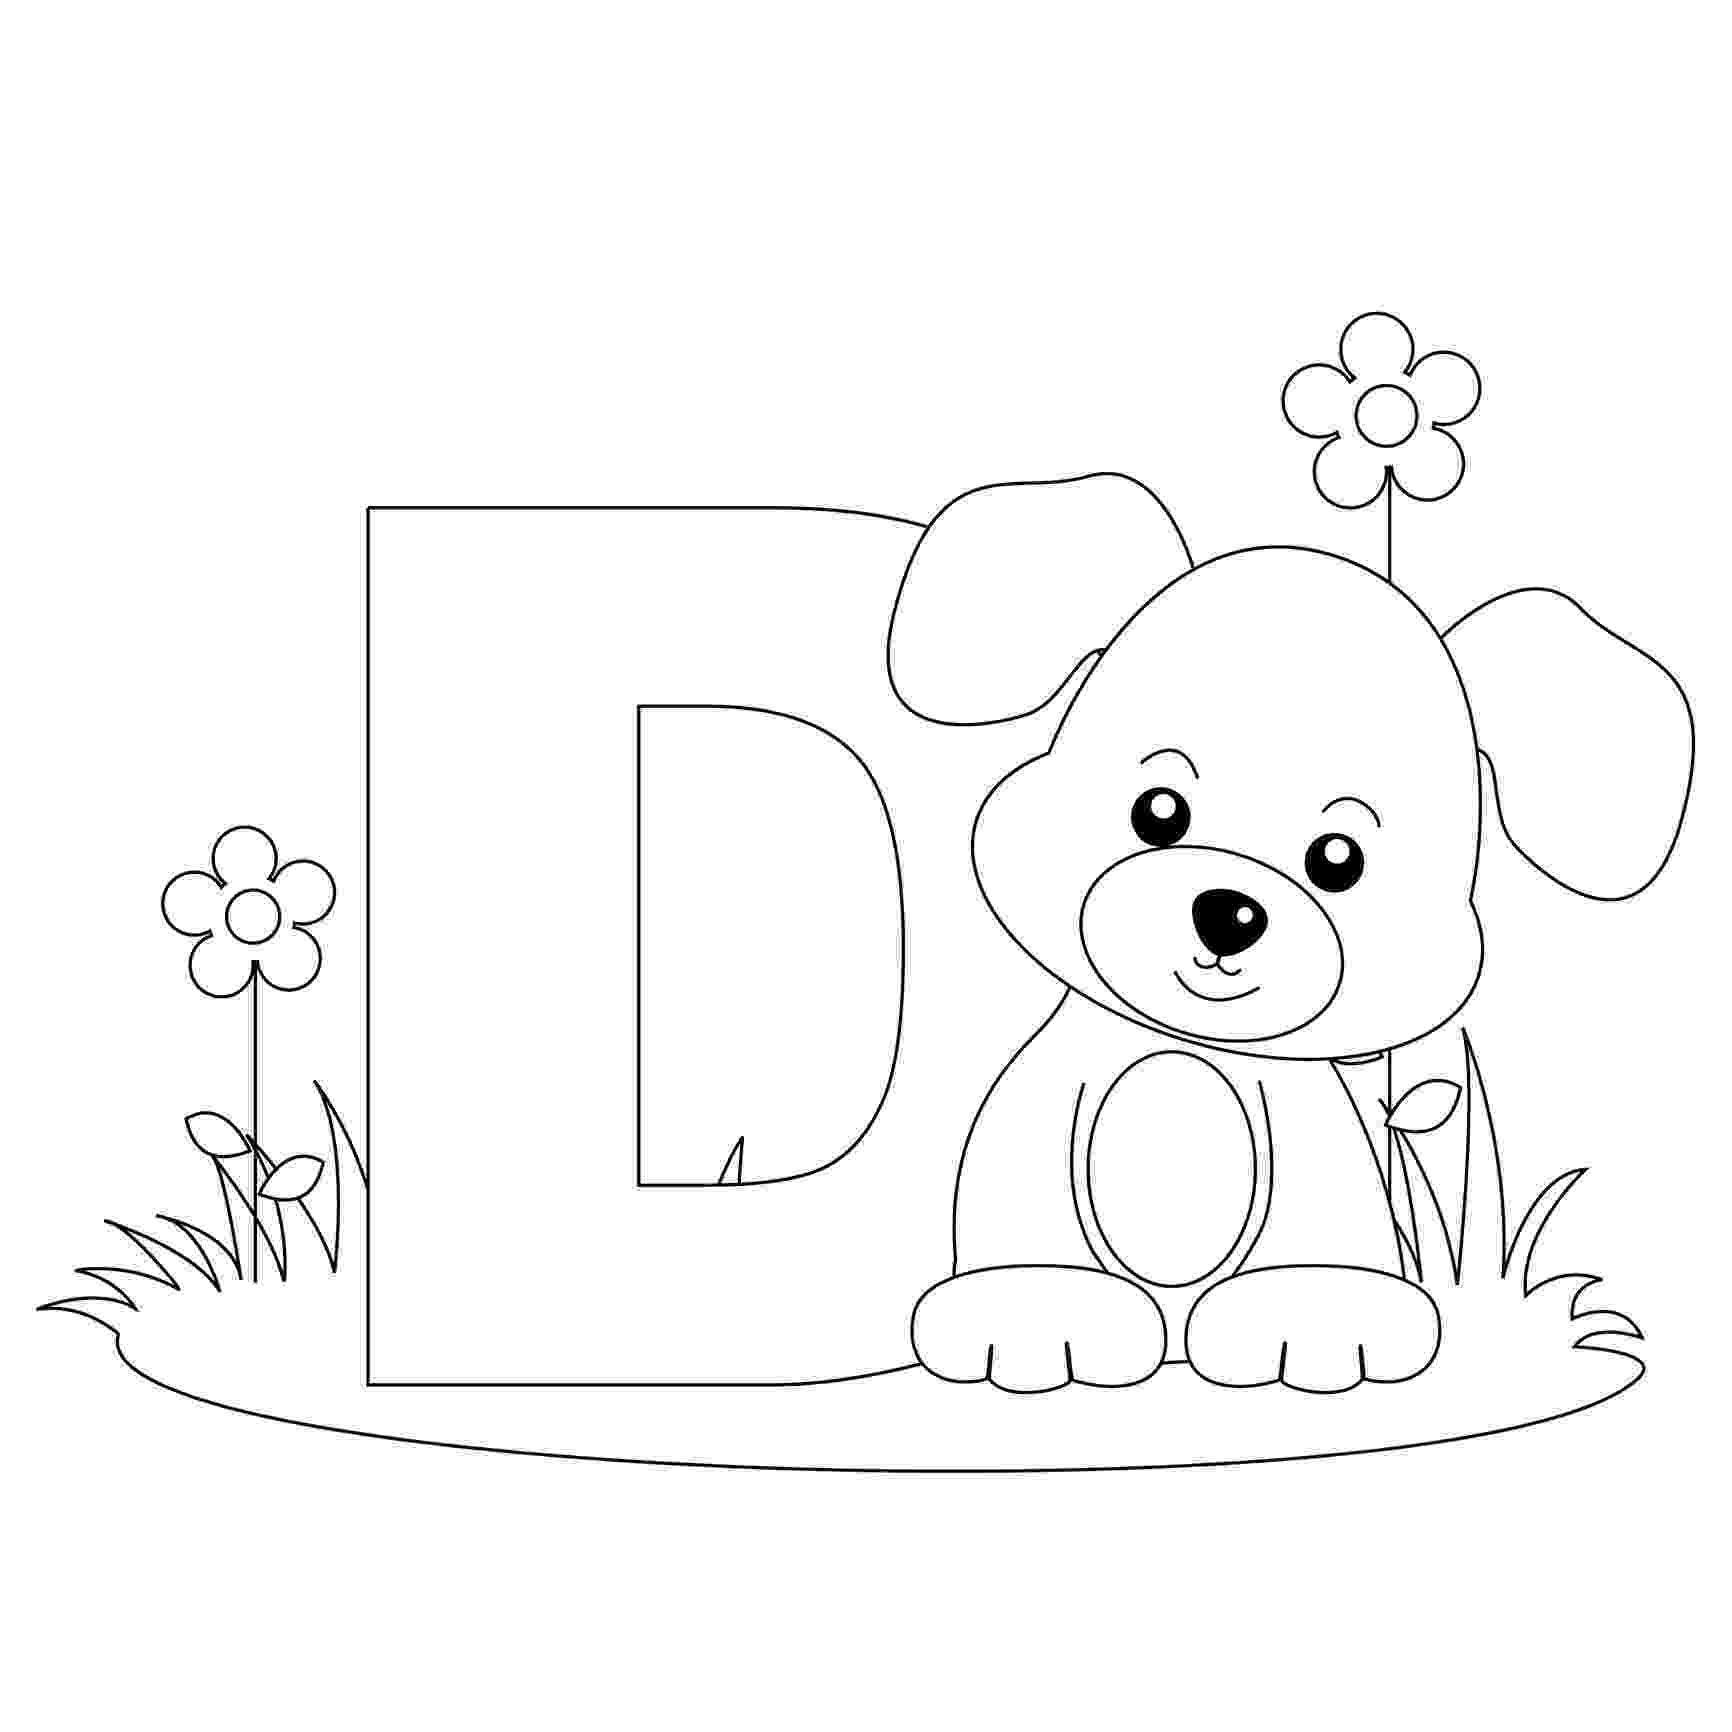 childrens colouring pages alphabet free printable alphabet coloring pages for kids best childrens pages alphabet colouring